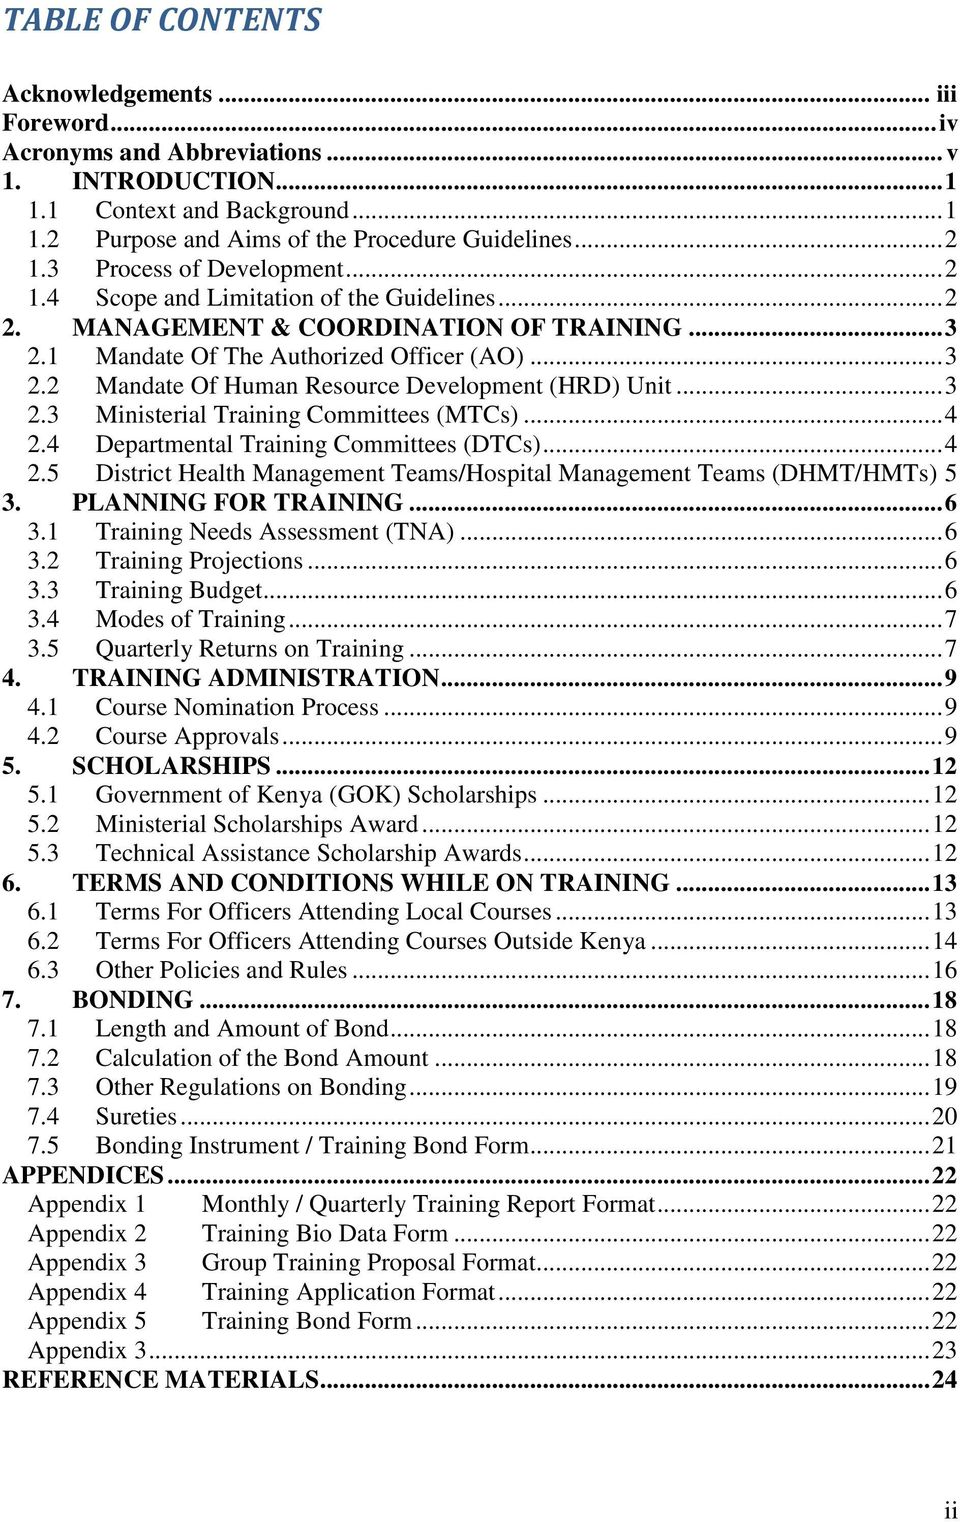 .. 3 2.3 Ministerial Training Committees (MTCs)... 4 2.4 Departmental Training Committees (DTCs)... 4 2.5 District Health Management Teams/Hospital Management Teams (DHMT/HMTs) 5 3.